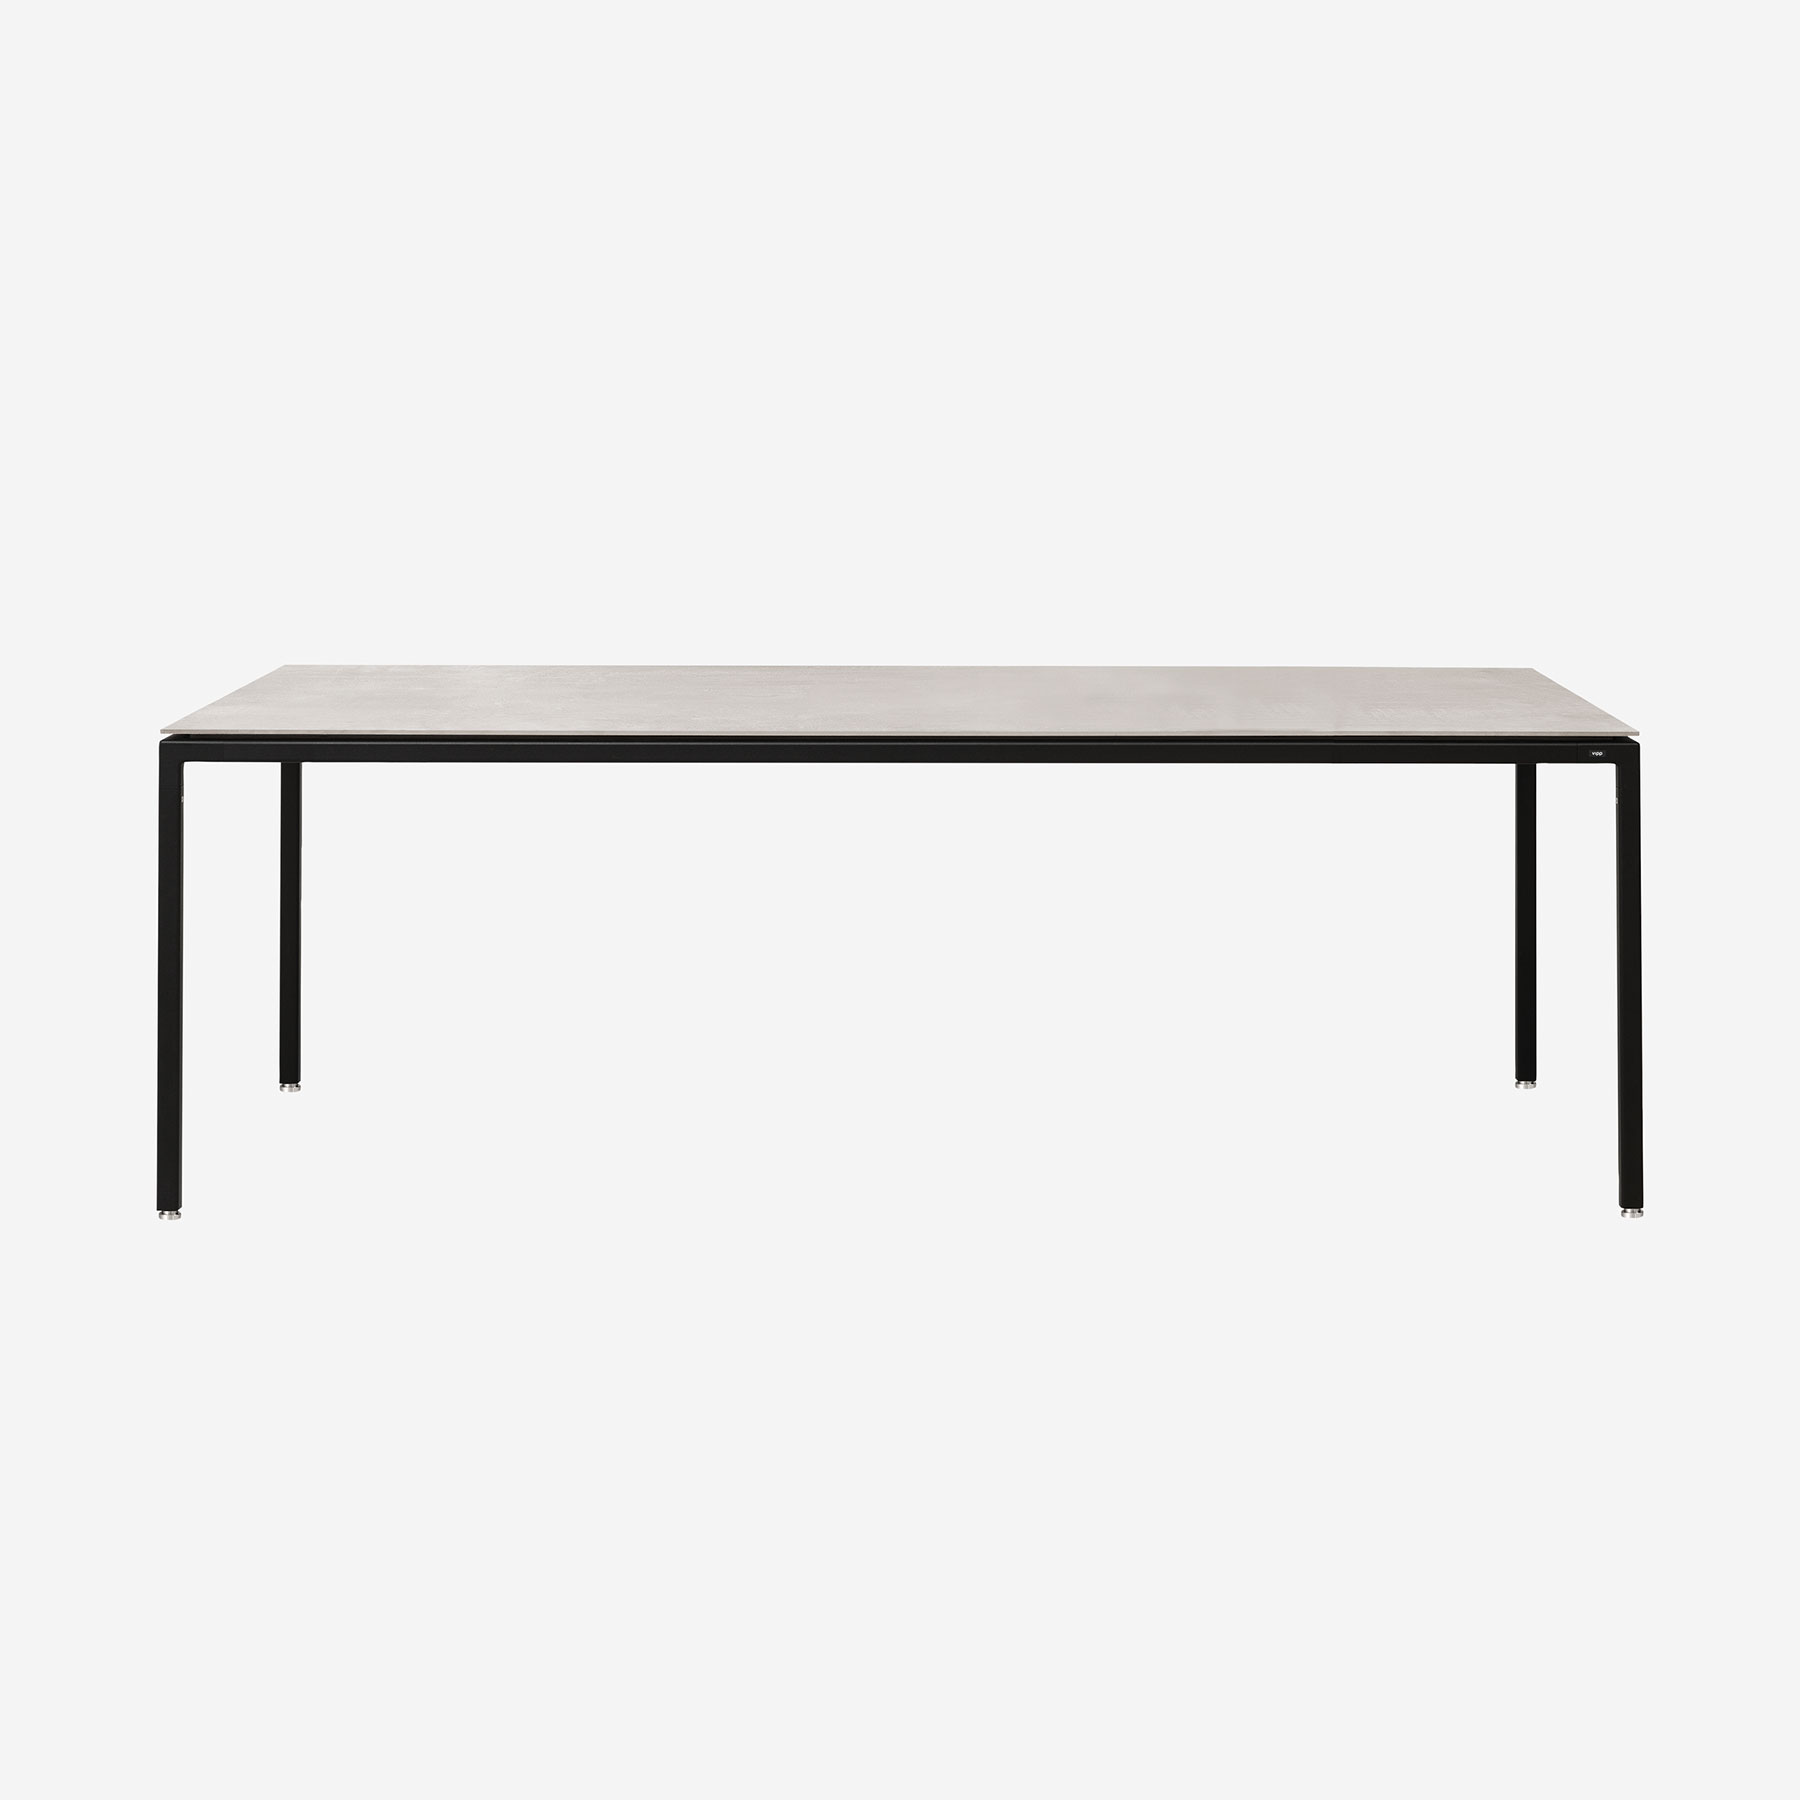 Superieur Table, Medium | Vipp.com